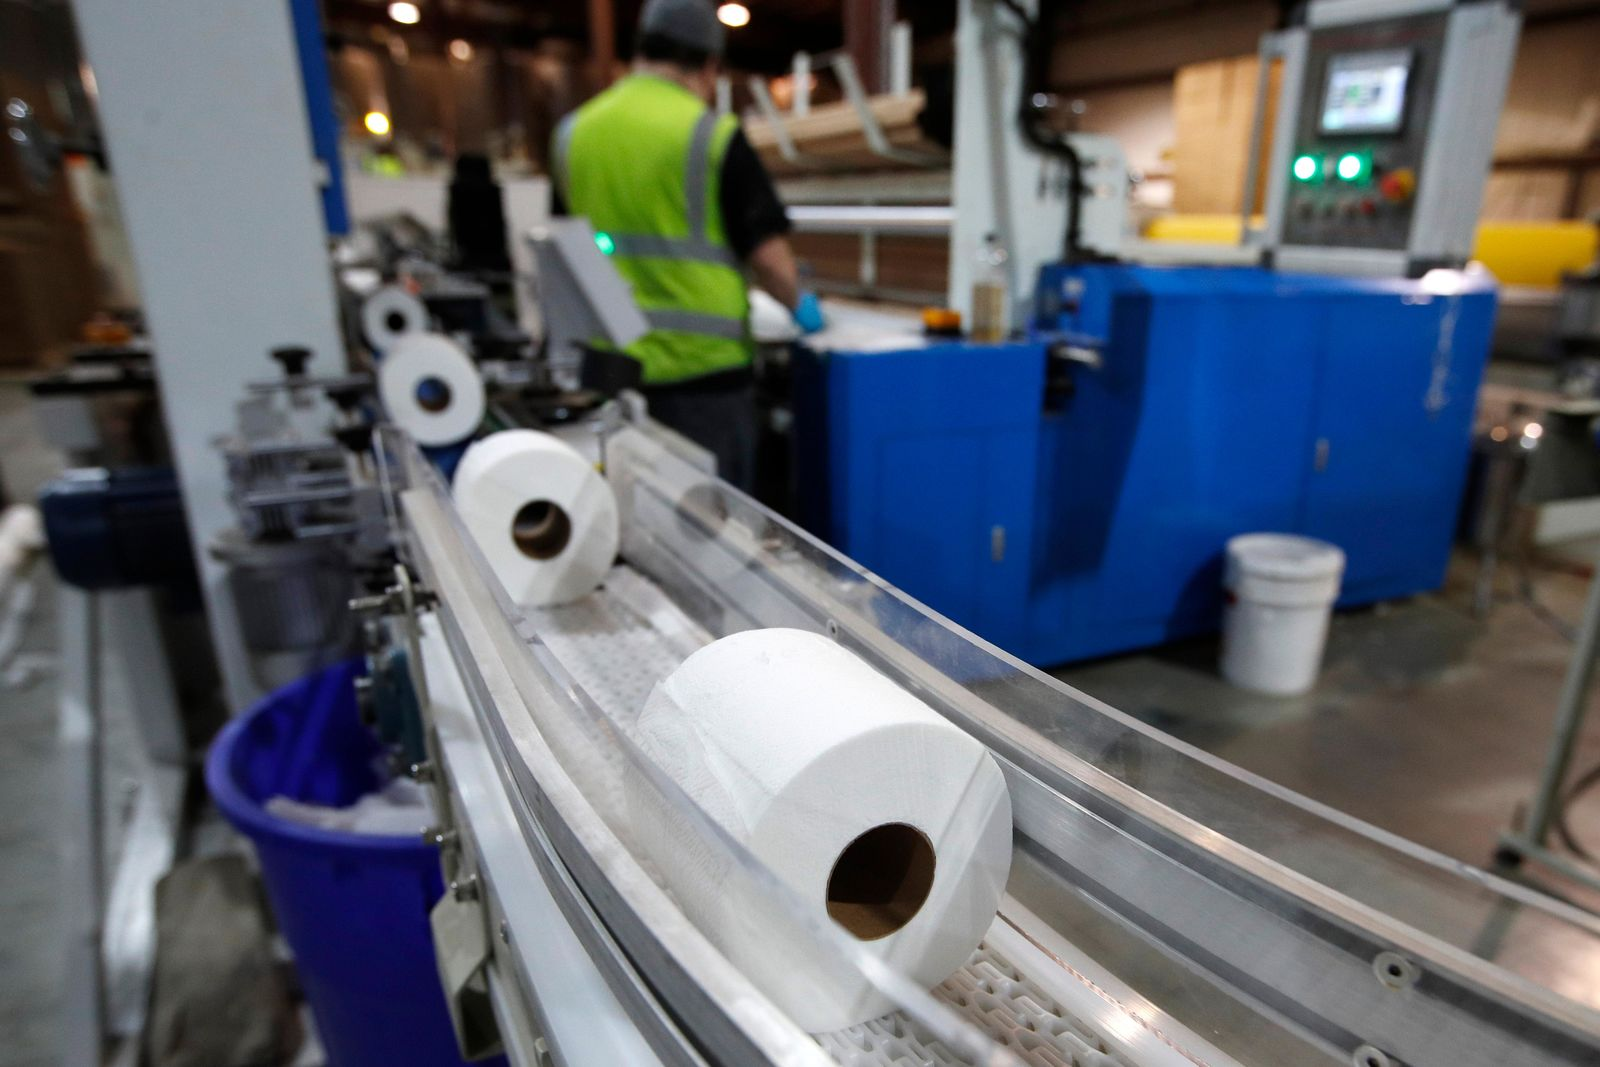 Toilet paper moves out from a cutting machine at the Tissue Plus factory, Wednesday, March 18, 2020, in Bangor, Maine. The new company has been unexpectedly busy because of the shortage of toilet paper brought on by hoarders concerned about the coronavirus. (AP Photo/Robert F. Bukaty)